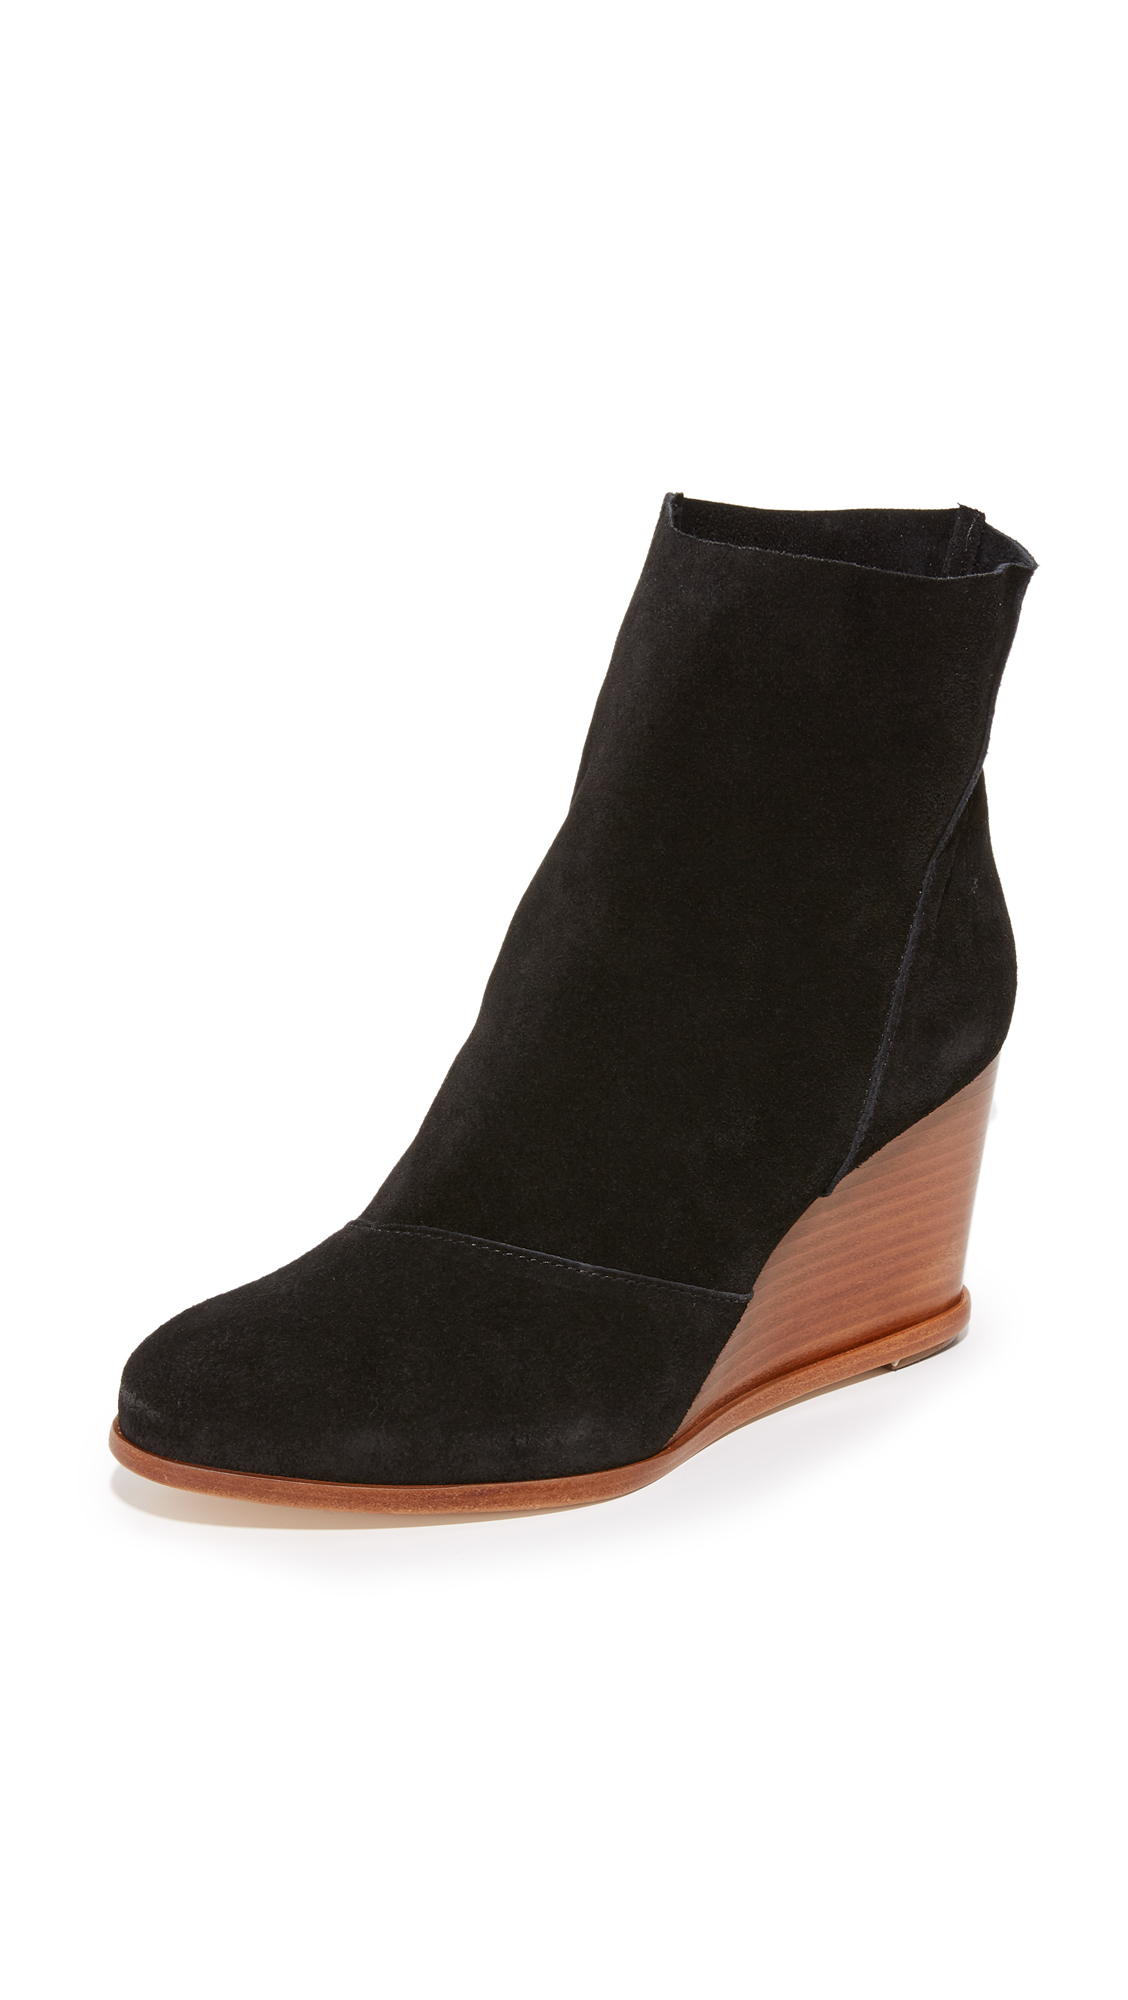 Matt Bernson Brooklyn Wedge Booties - Black